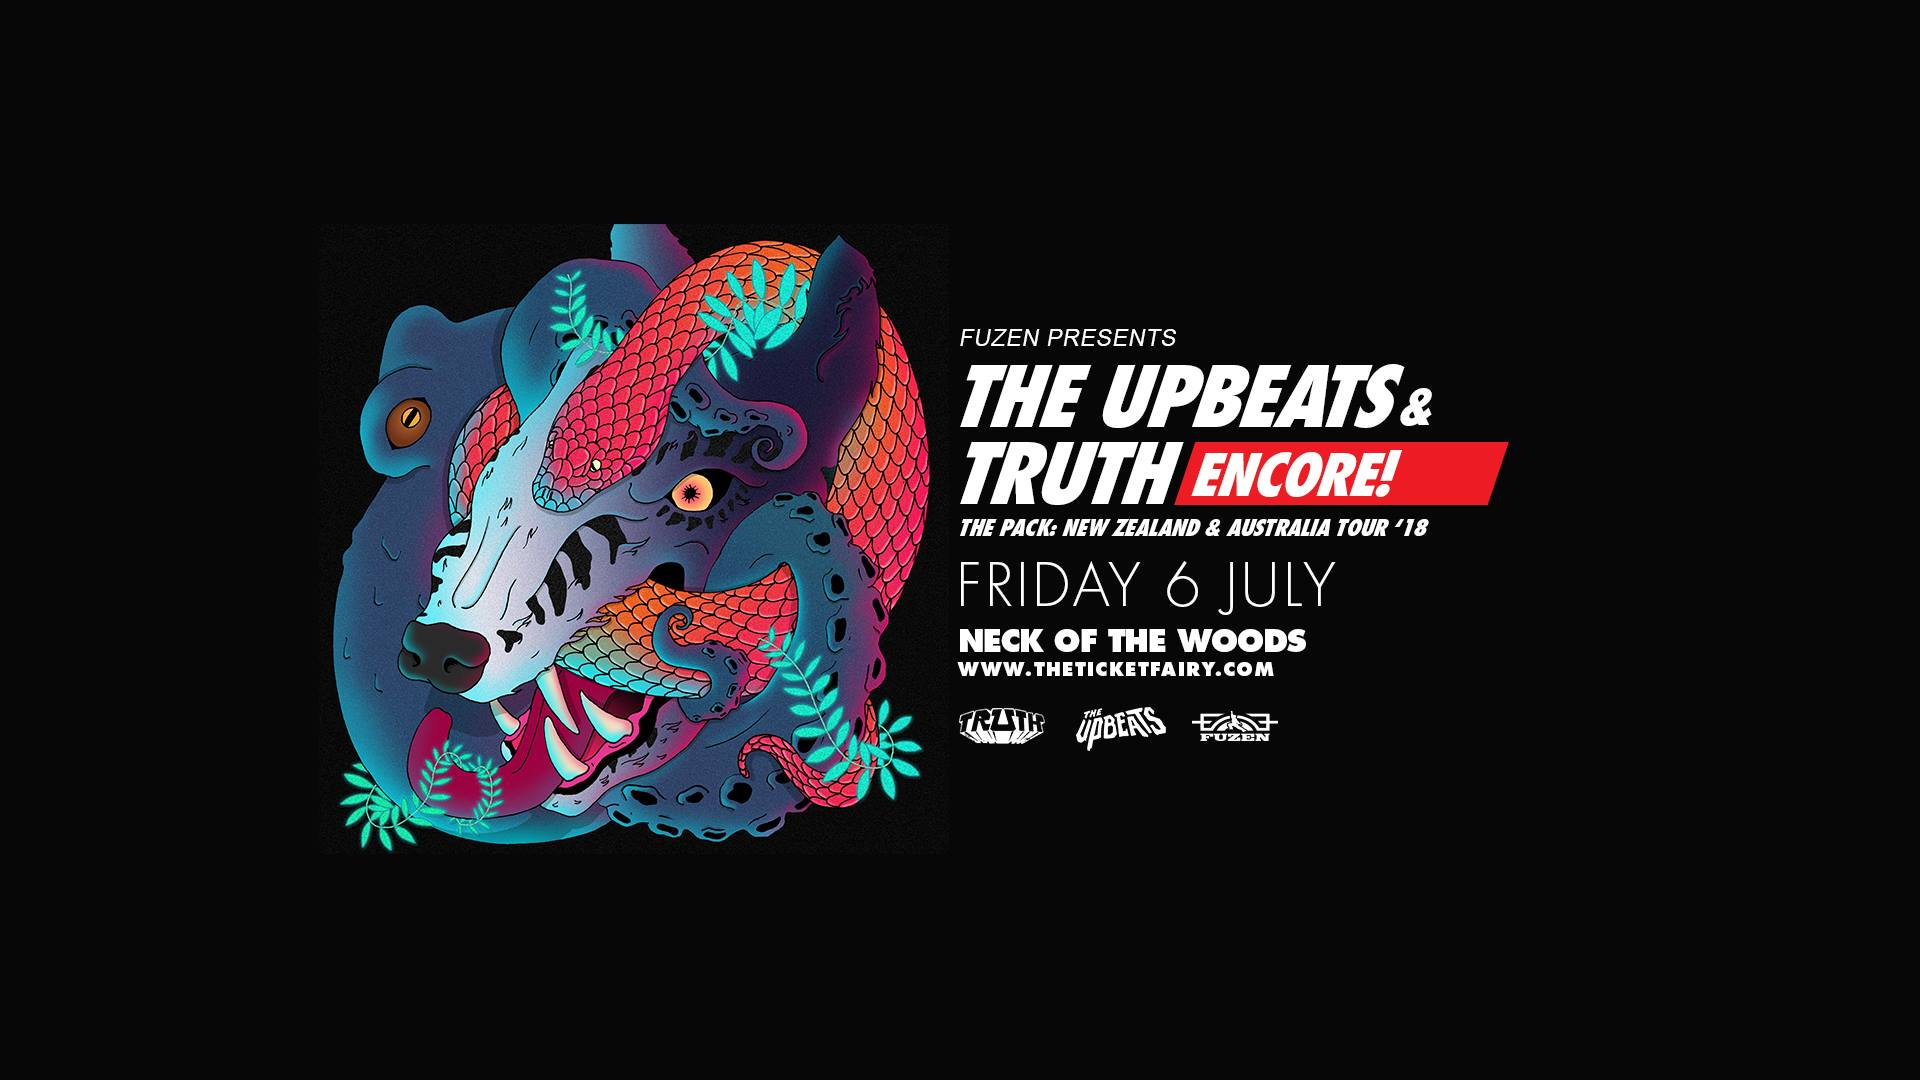 The Upbeats, Truth